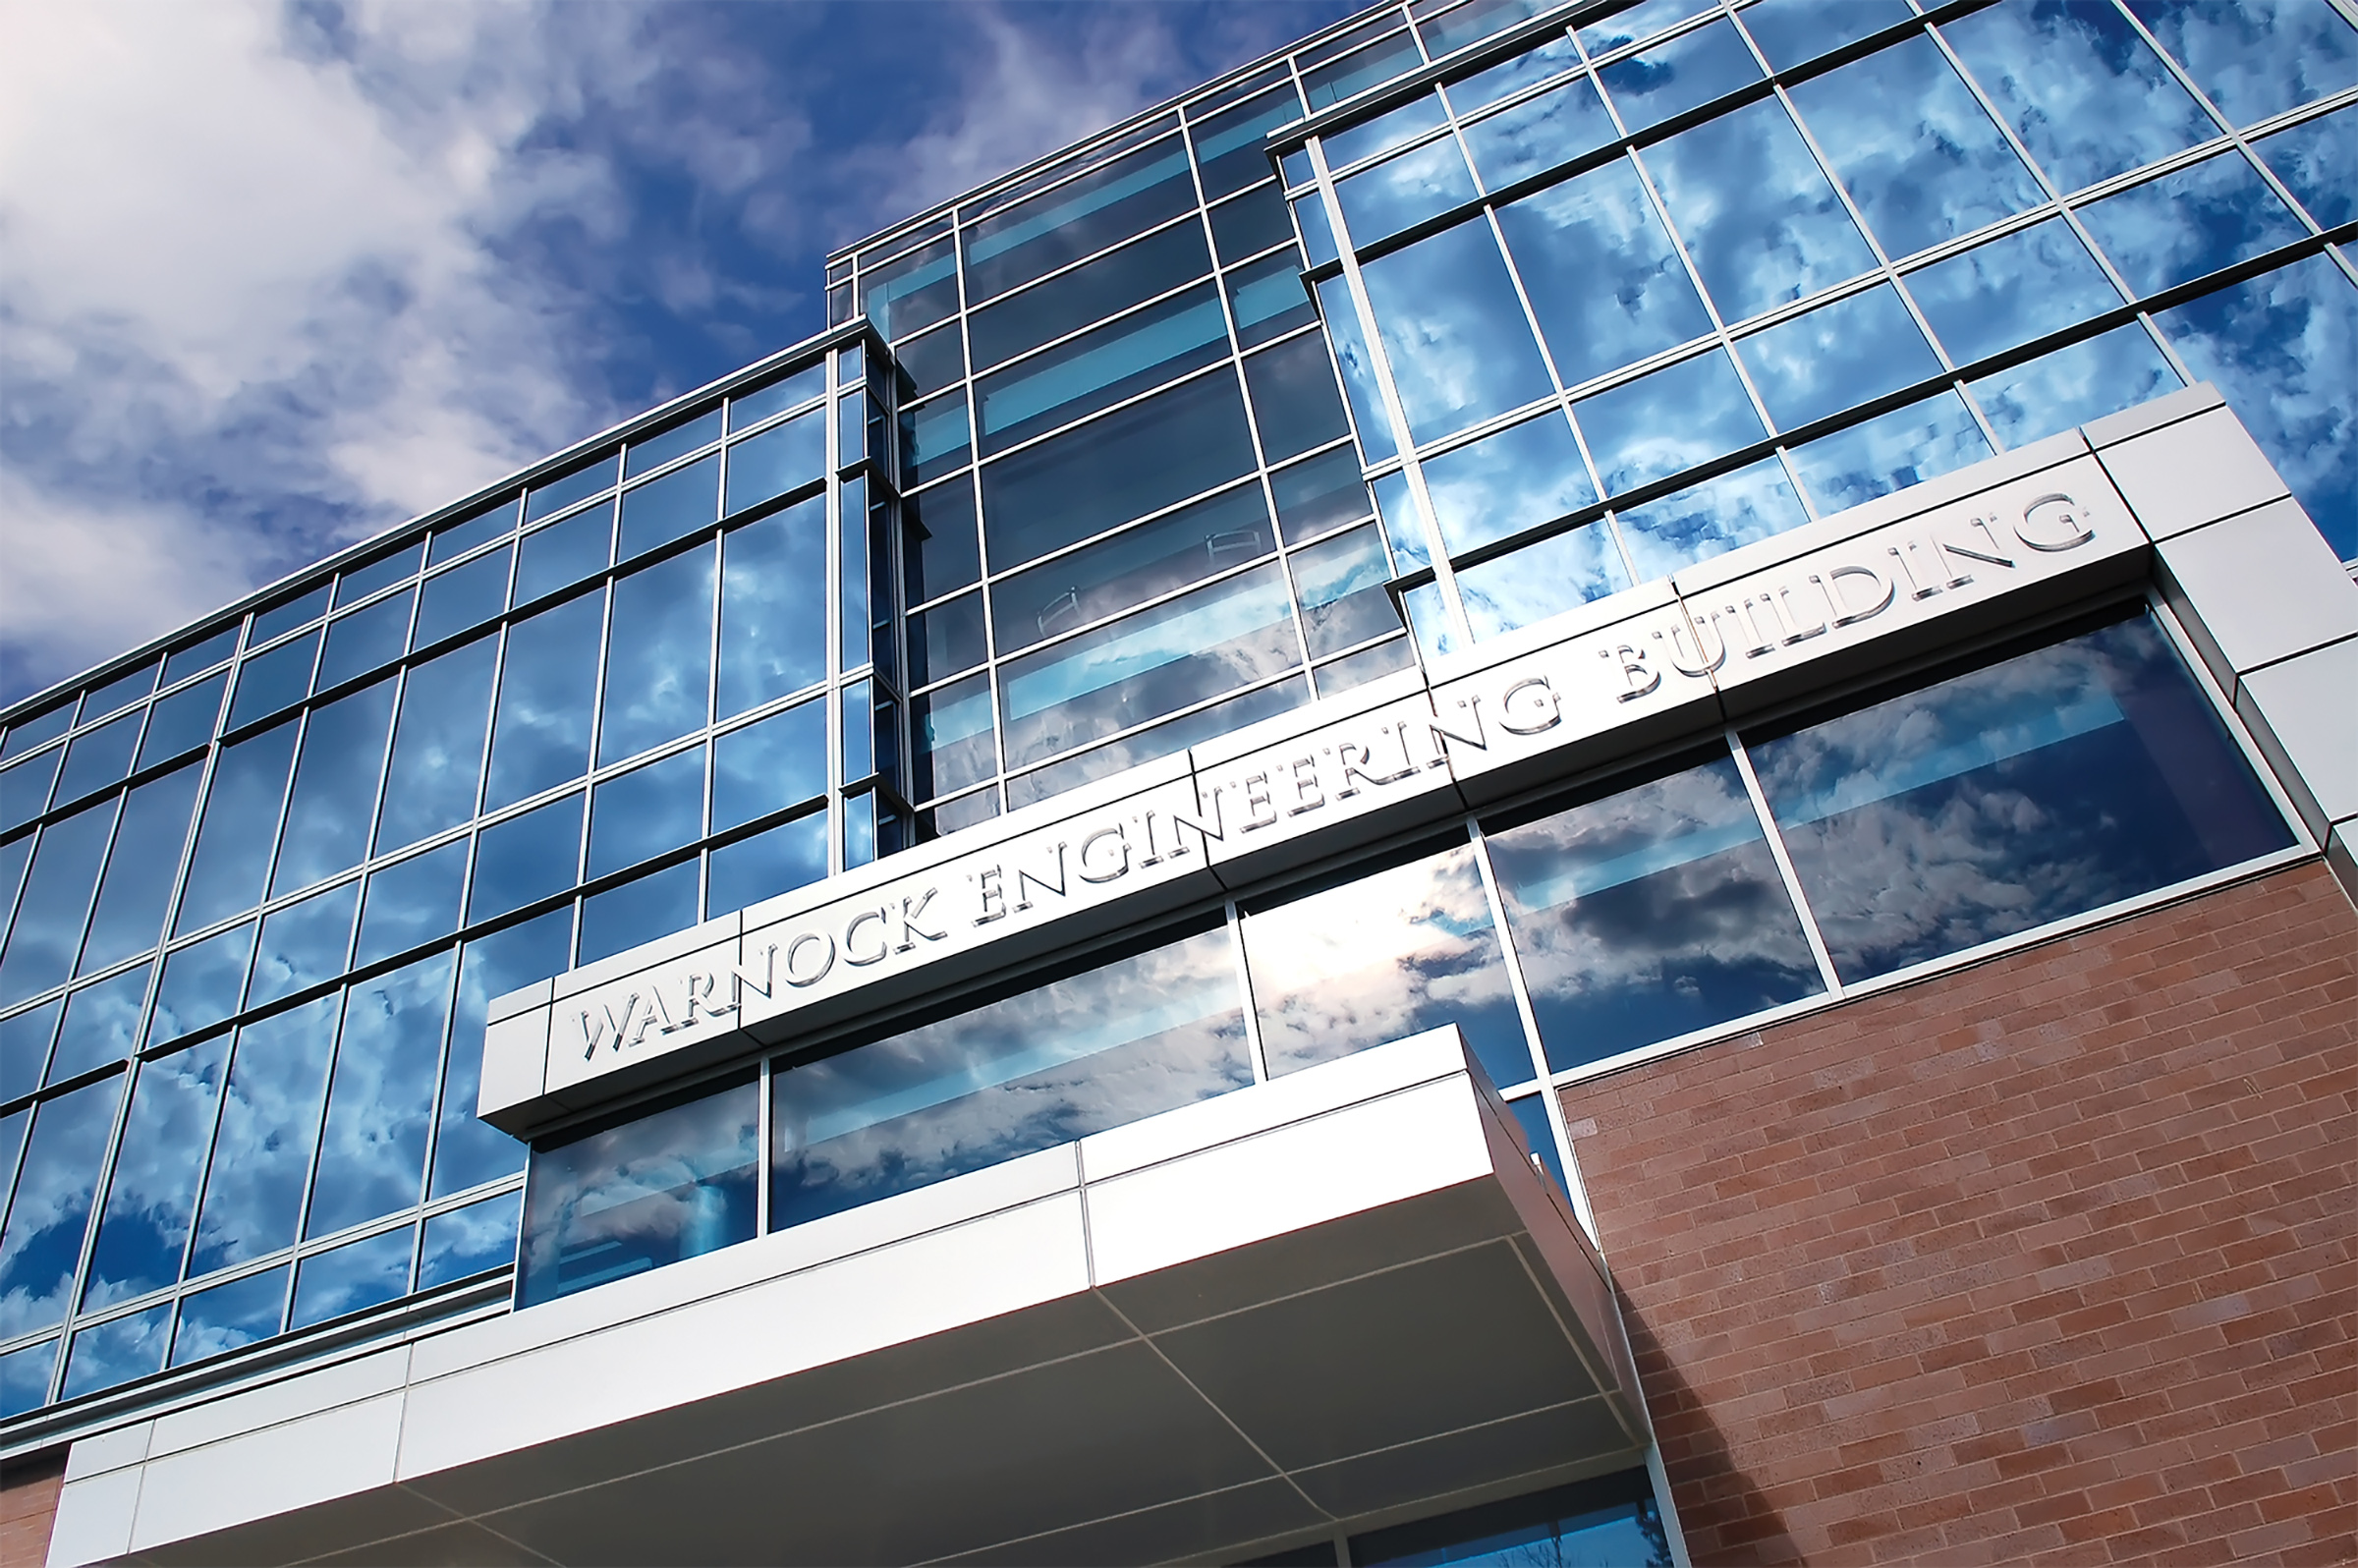 The Warnock Engineering Building is home to the University of Utah's College of Engineering, which moved up two spots from 59th to 57th in the new 2015 U.S. News & World Report America's Best Colleges rankings of undergraduate engineering programs. The college has made remarkable strides in recent years, tying for the fastest-rising undergraduate engineering program in the country according to the America's Best Colleges ranking. The college moved from 70th in 2008 to 57th in the new 2015 report.